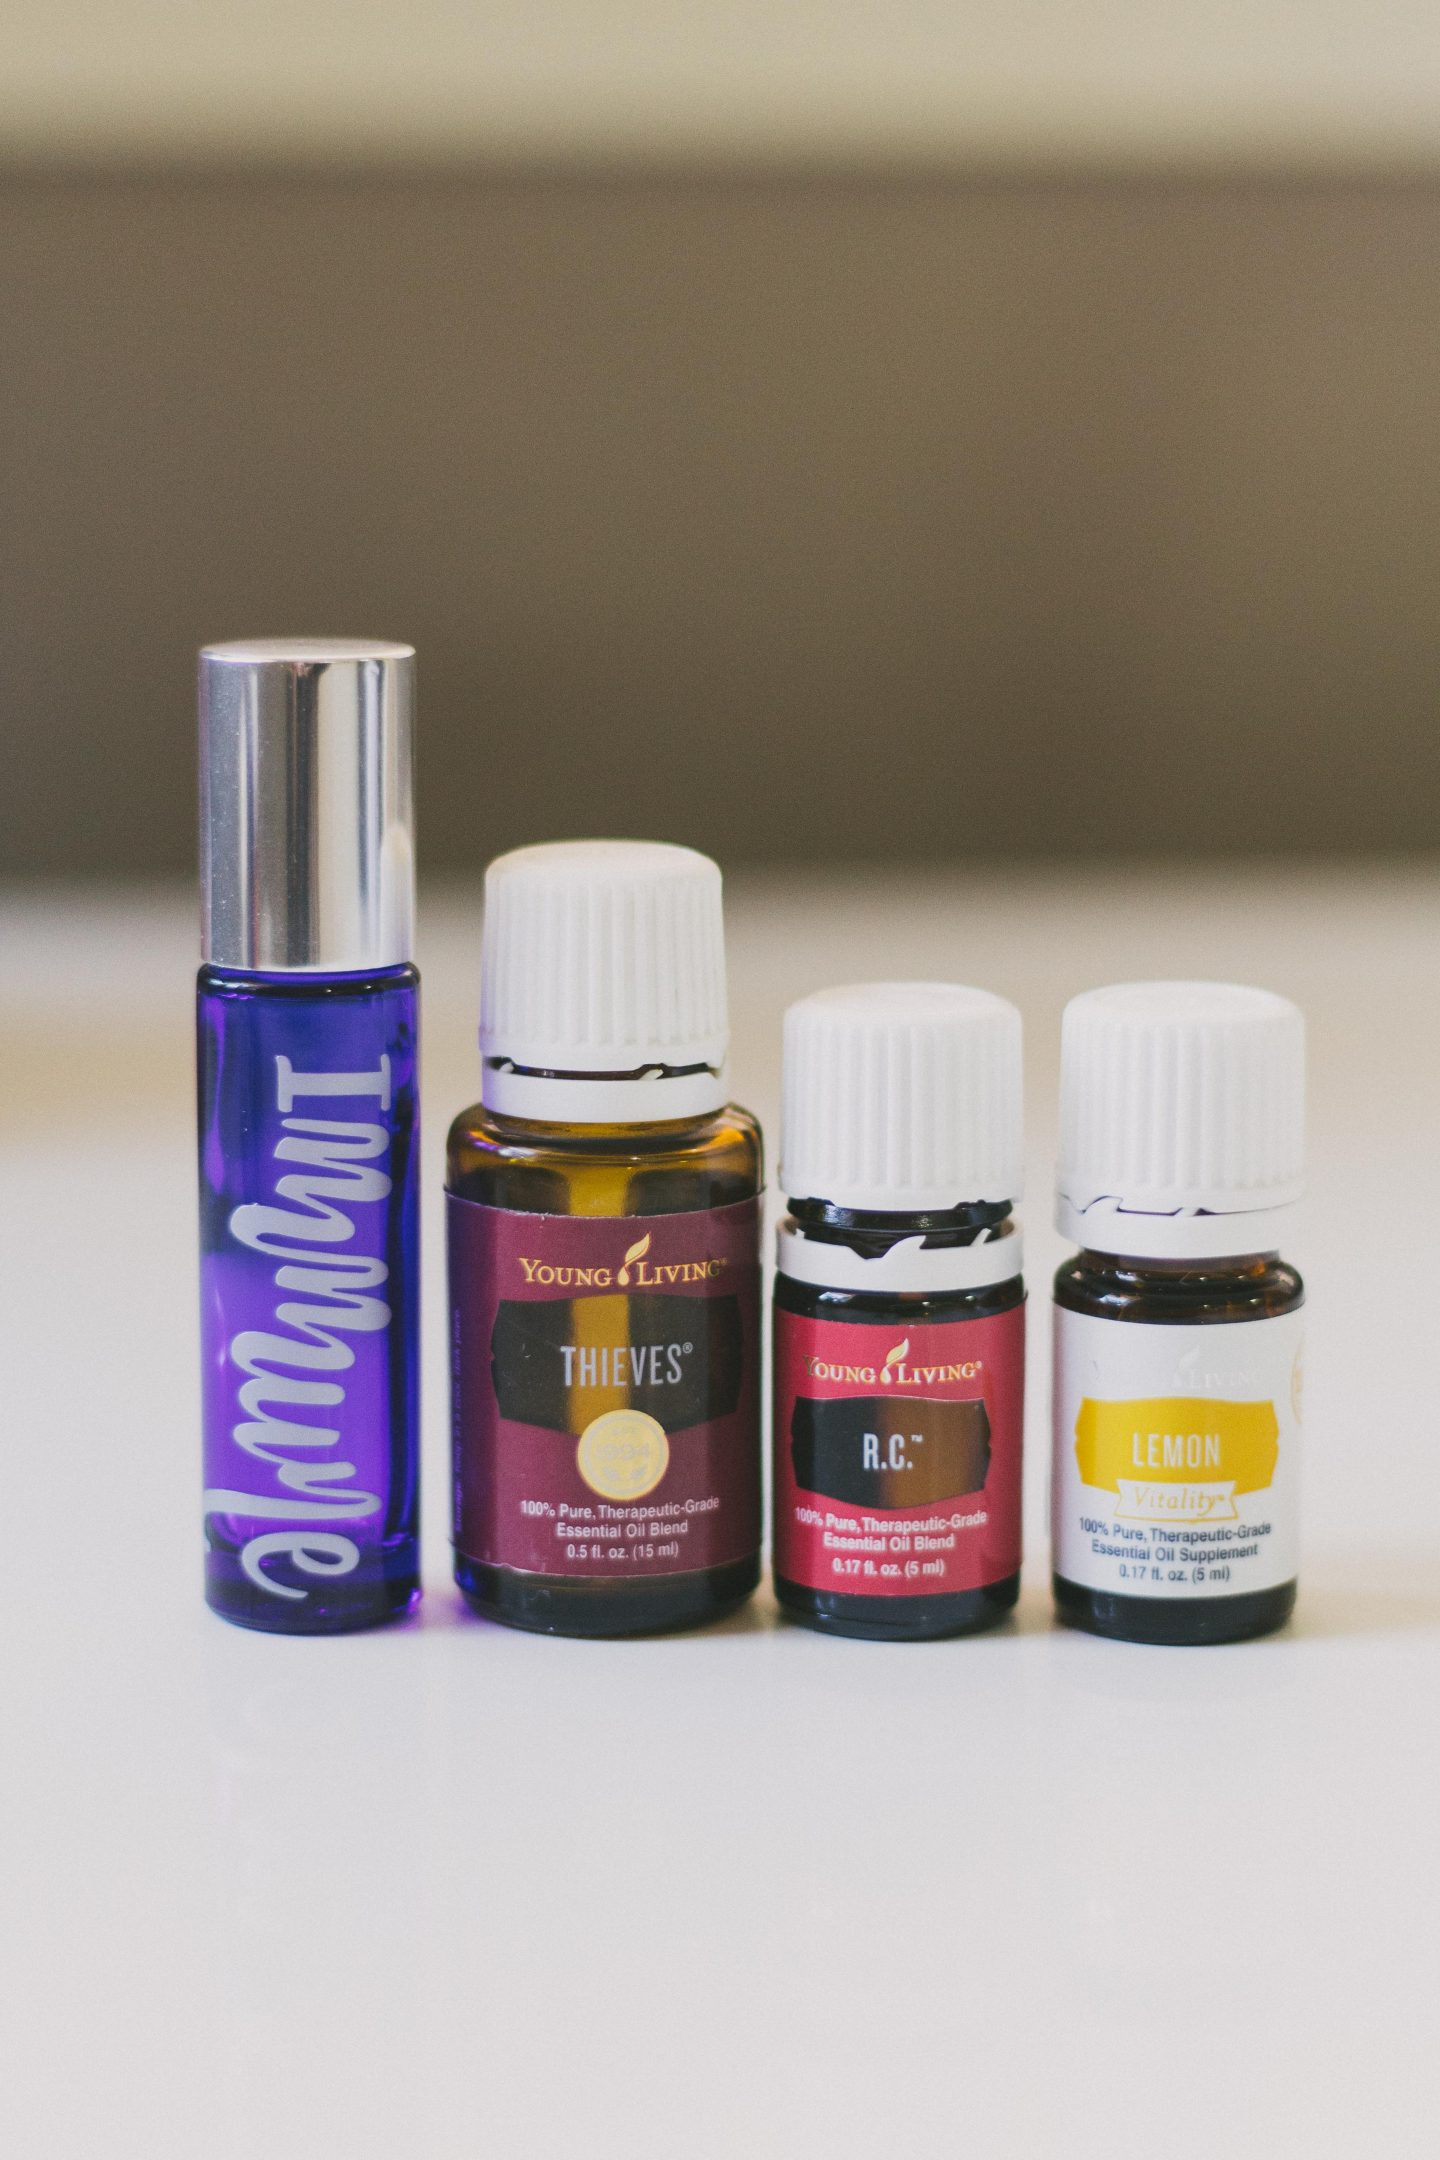 how I support my family's sleep, immunity and relieve allergy symptoms naturally